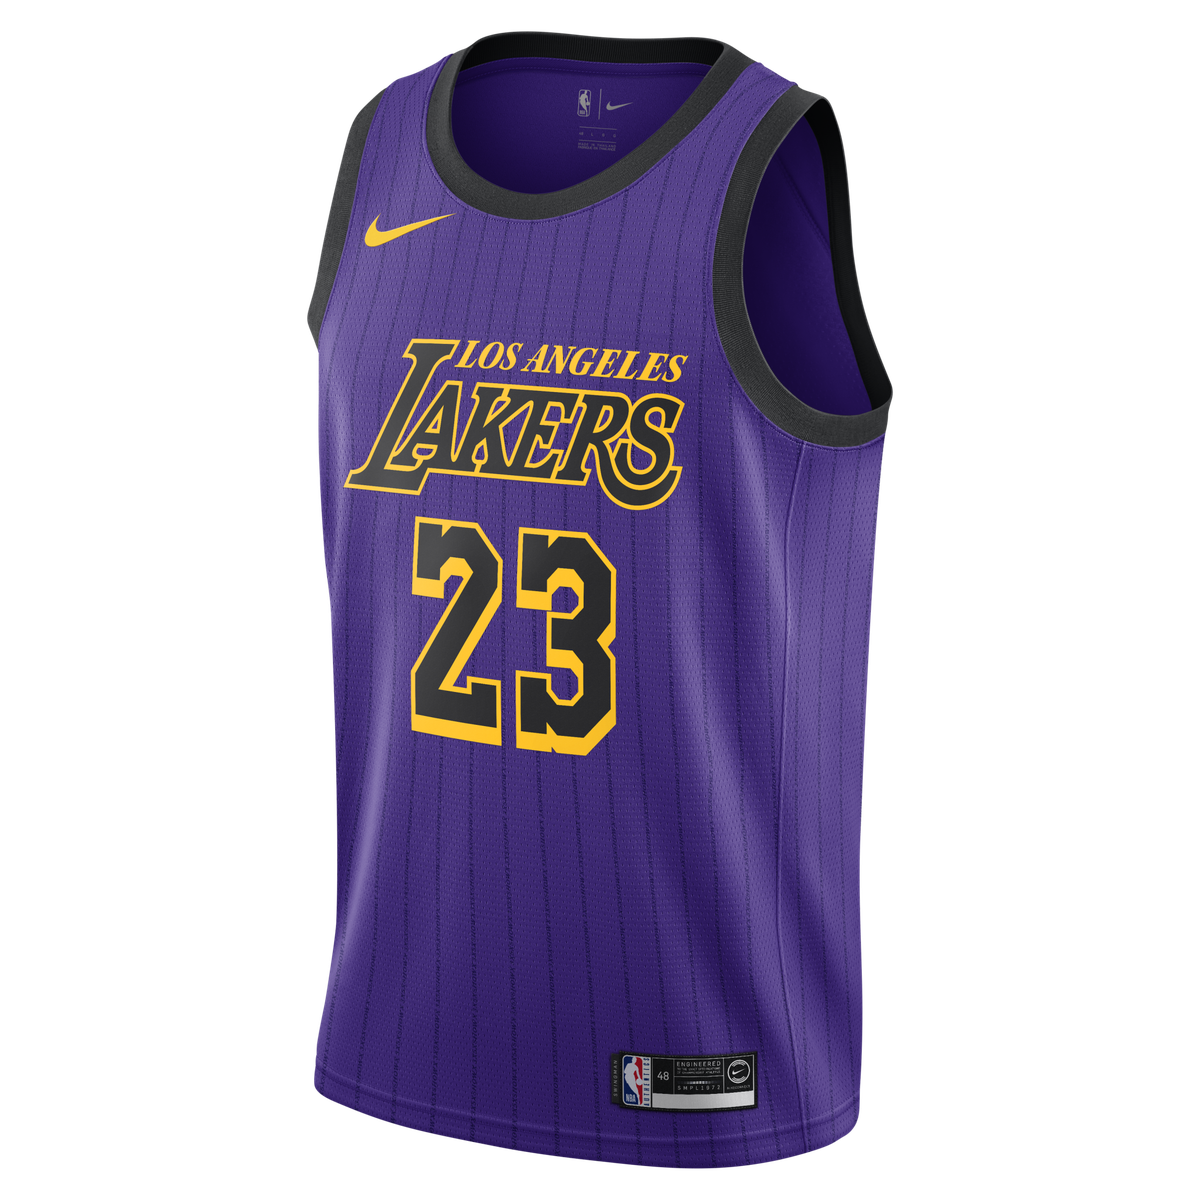 924c938dda6 LeBron James Nike Swingman Jersey - City Edition for  109.99 Fanatics